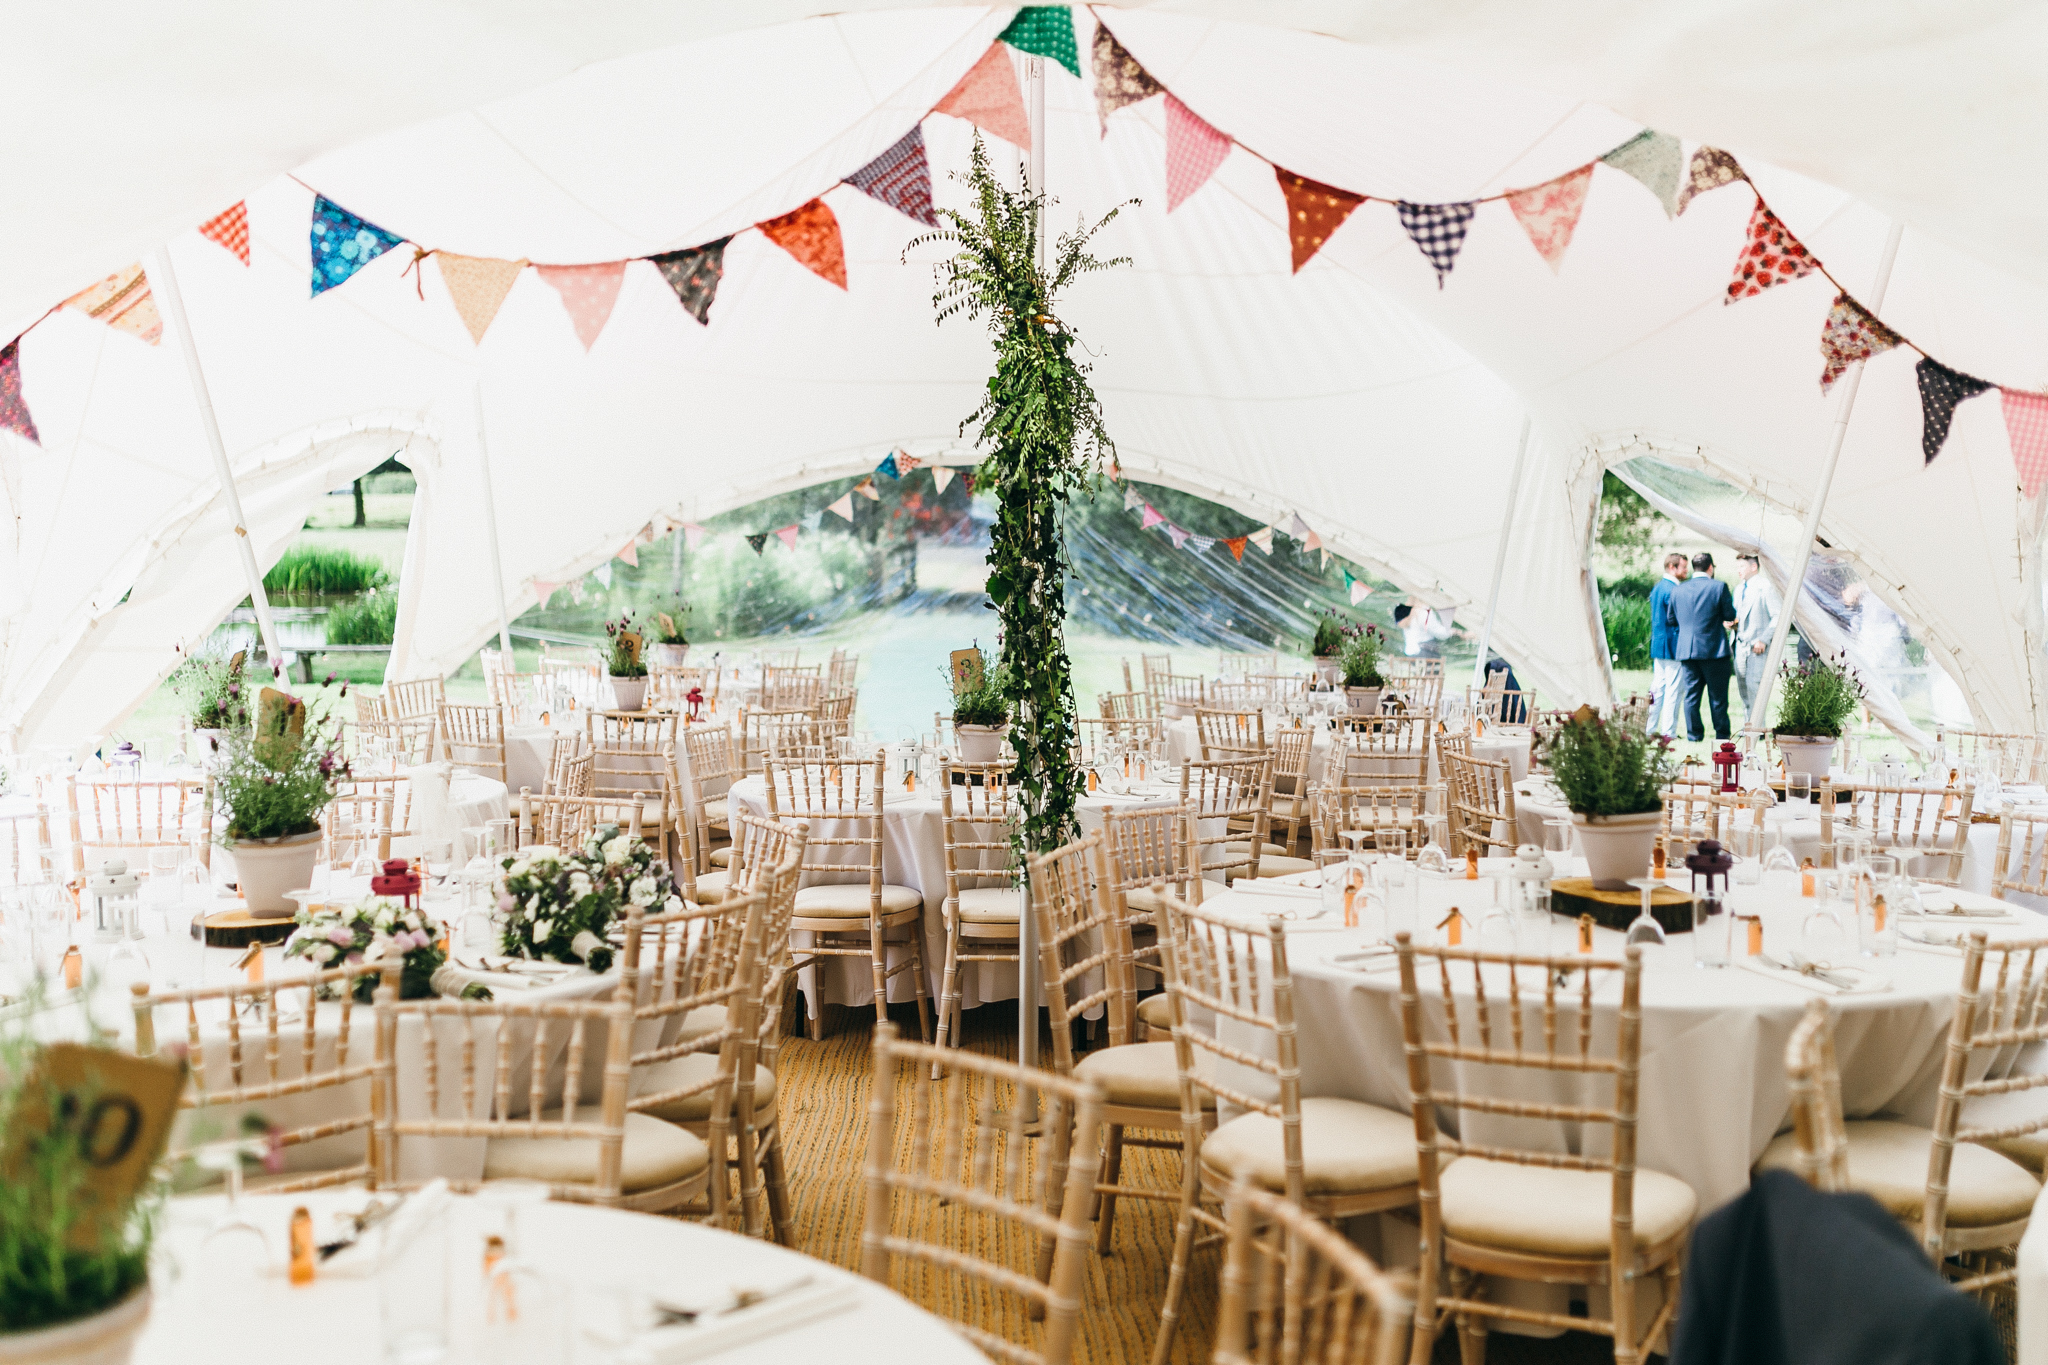 tipi colorful rustic and vintage tipi wedding photography in surrey